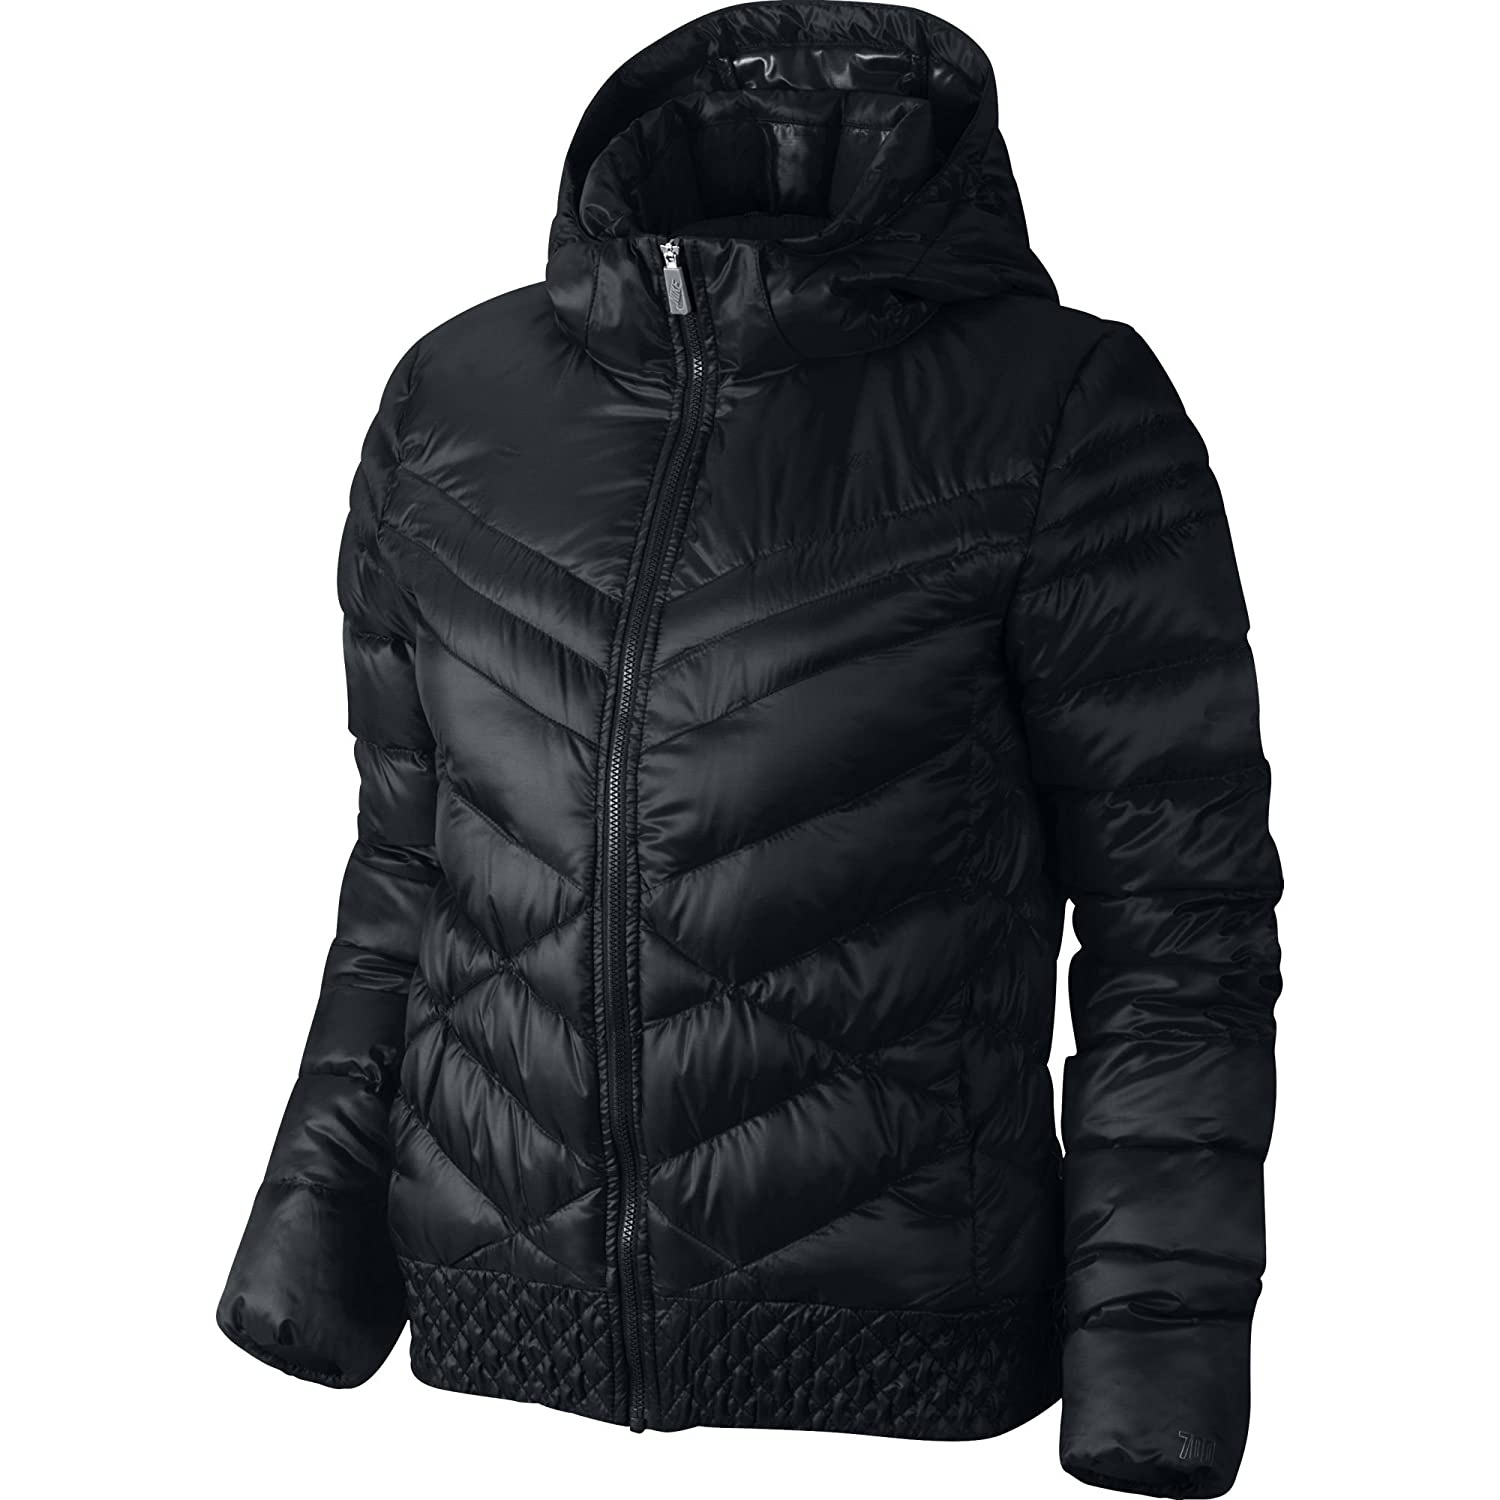 Nike jacket hooded cascade 700 down